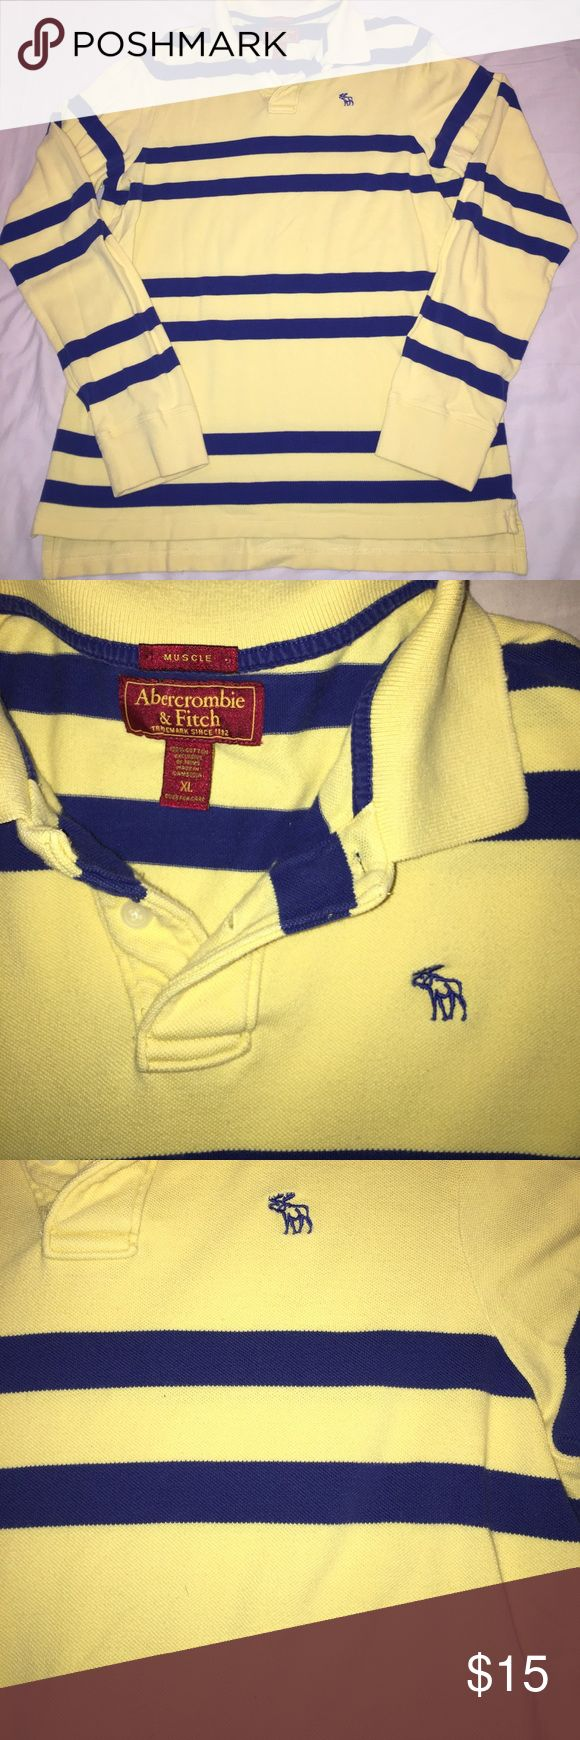 Men's Abercrombie and Fitch long sleeve polo Men's Abercrombie and Fitch long sleeve polo. Yellow and blue. XL EXTRA LARGE Abercrombie & Fitch Shirts Polos